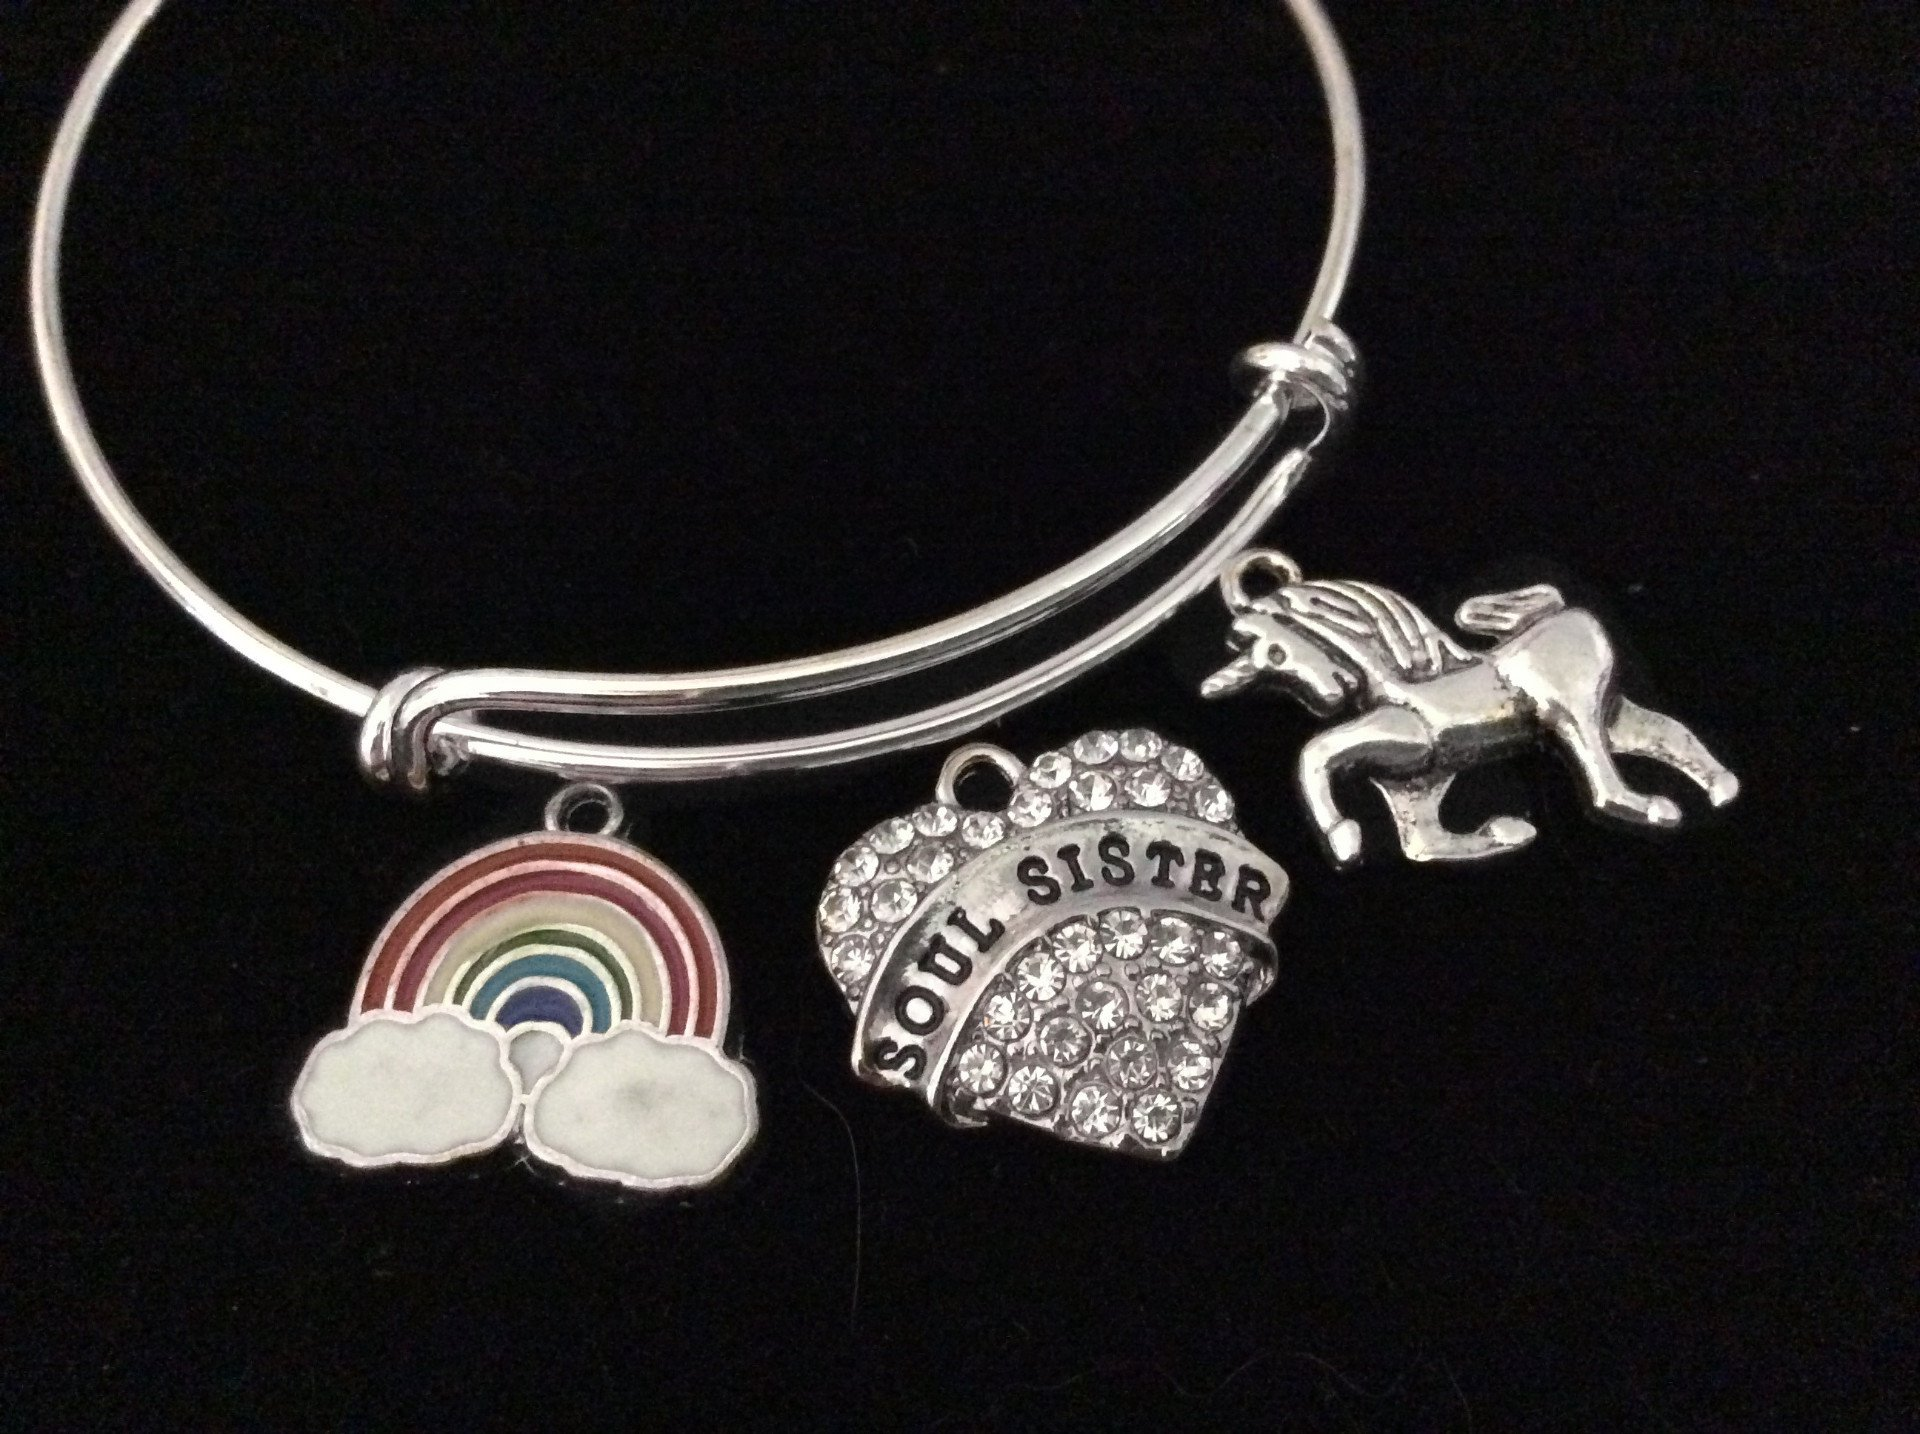 Rainbow Unicorn Soul Sister Expandable Charm Bracelet Silver Adjustable Bangle Trendy Best Friend Gift BFF 3